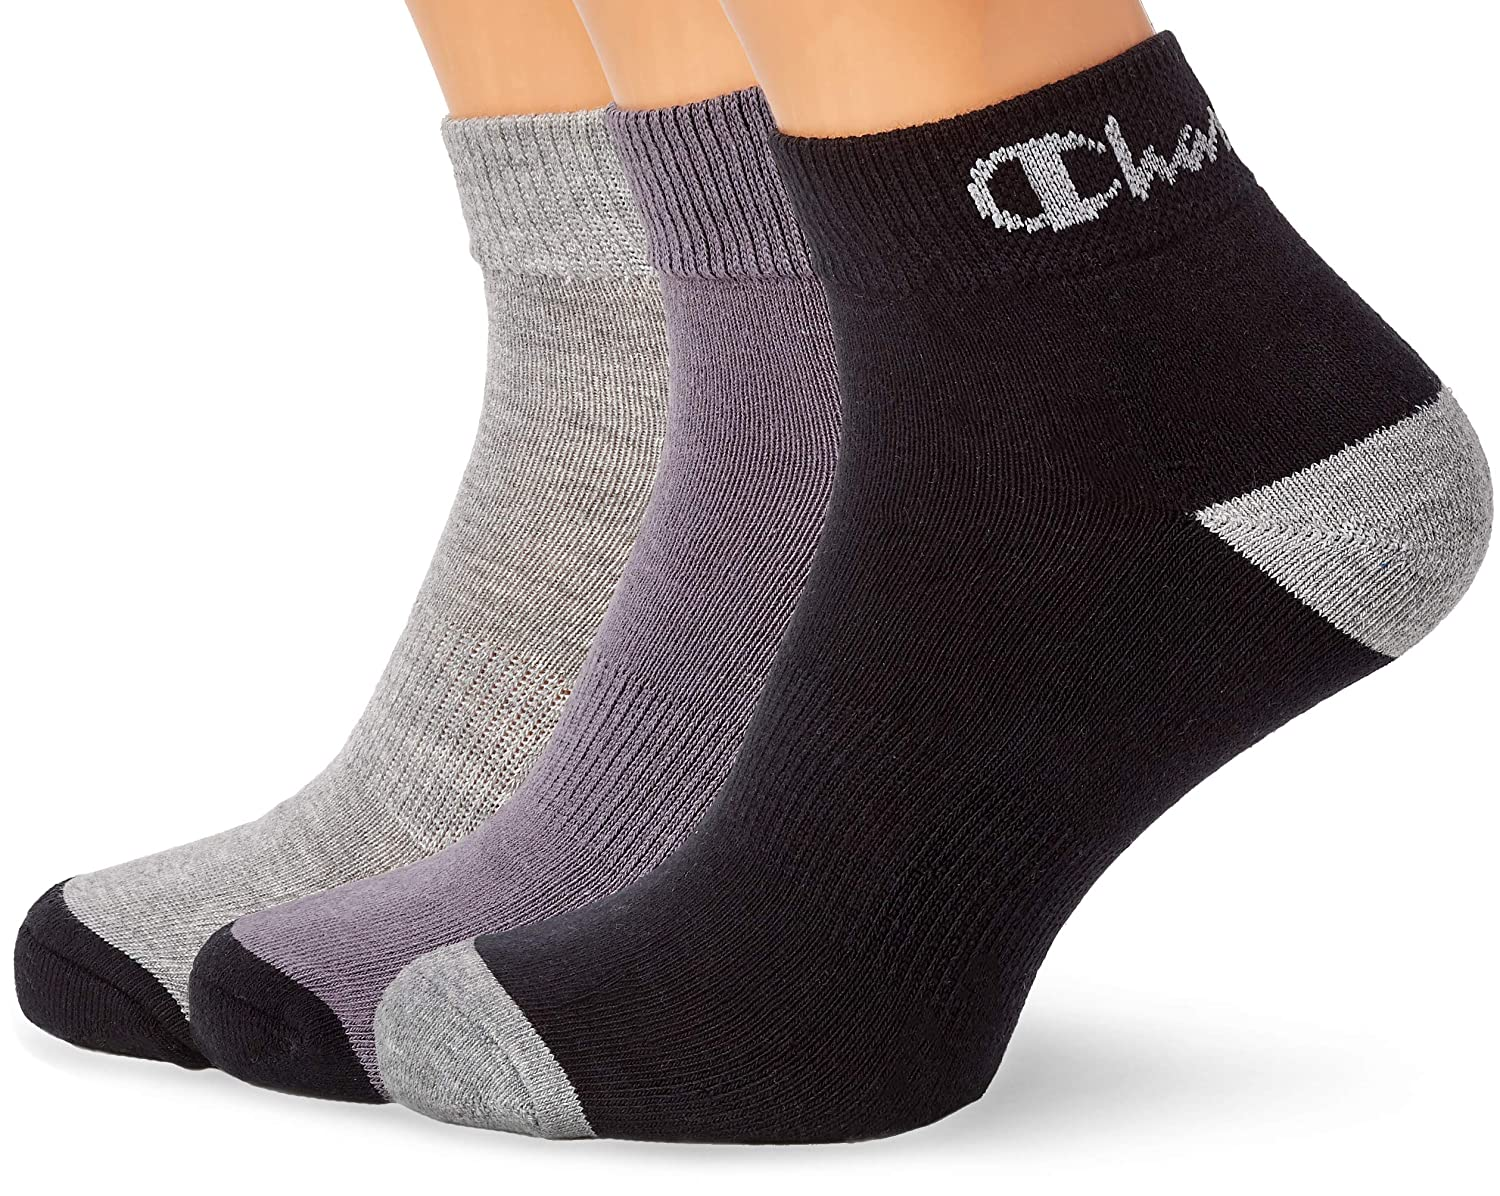 Champion Mens Performance Ankle Sportswear Pack of 3